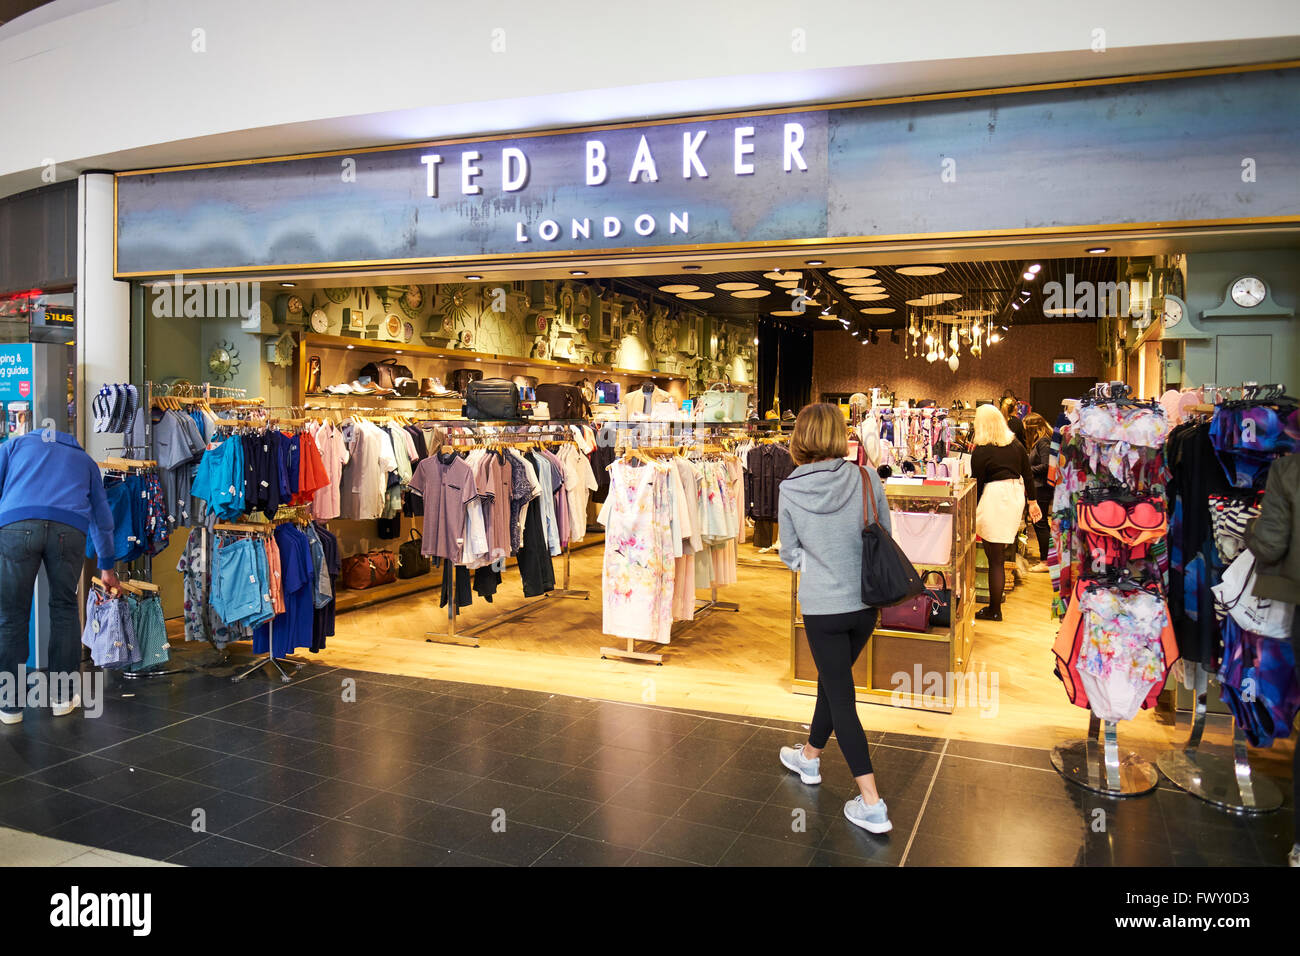 7f2d99dbe4b Ted Baker Clothing Duty Free Shop North Terminal Gatwick Airport West  Sussex London UK